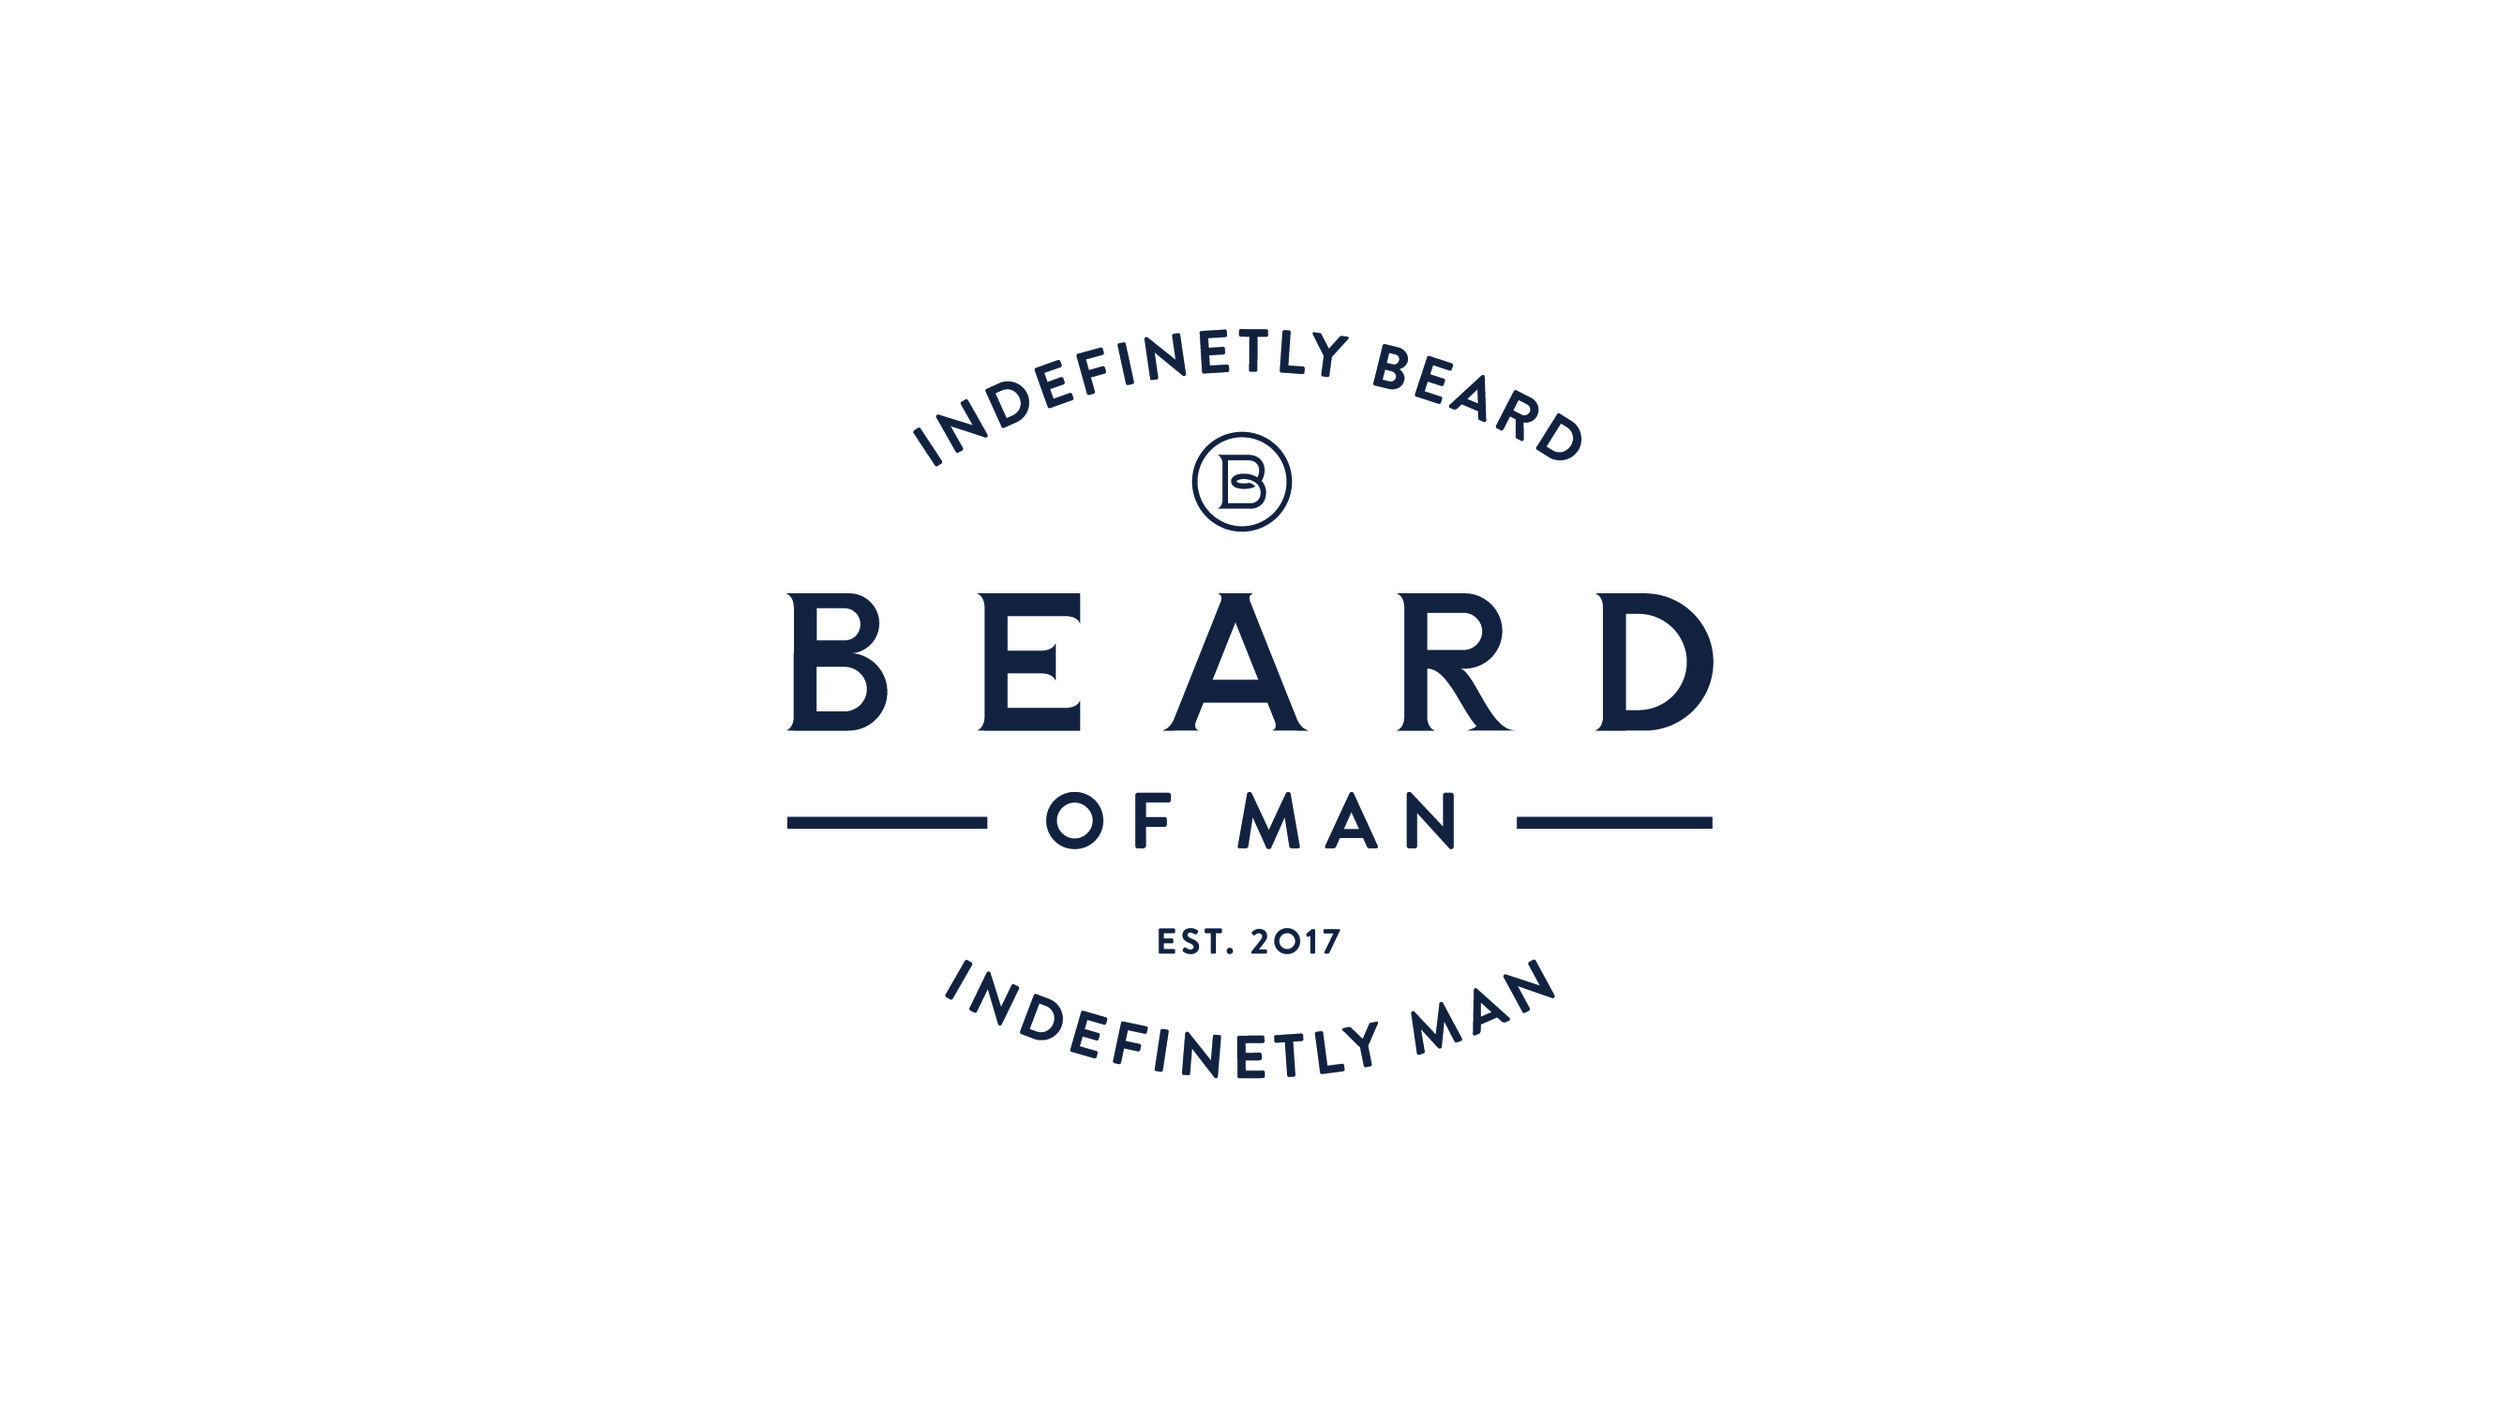 beard of manArtboard 1 copy 5Final Preview.jpg